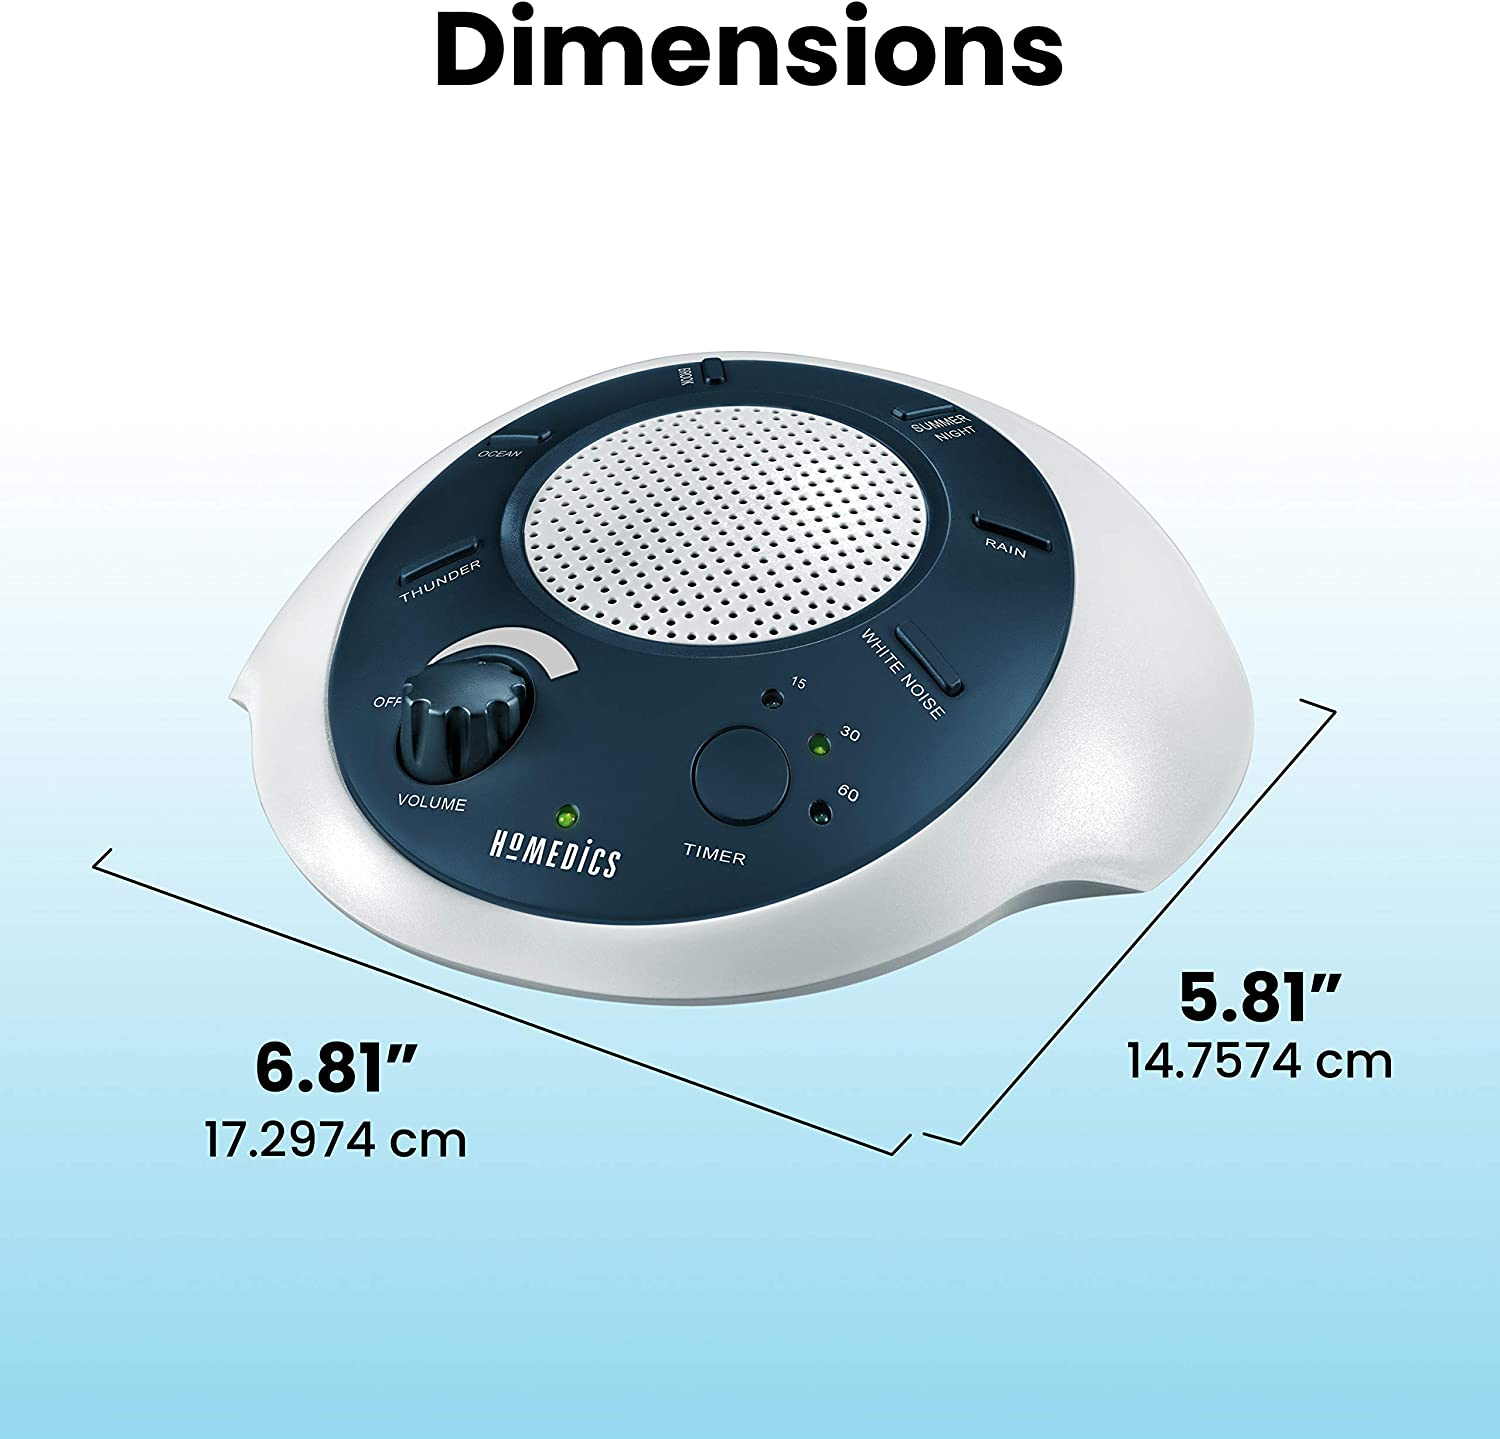 HoMedics White Noise Sound Machine   Portable Sleep Therapy for Home, Office, Baby & Travel   6 Relaxing & Soothing Nature Sounds, Battery or Adapter Charging Options, Auto-Off Timer   Sound Spa Blue